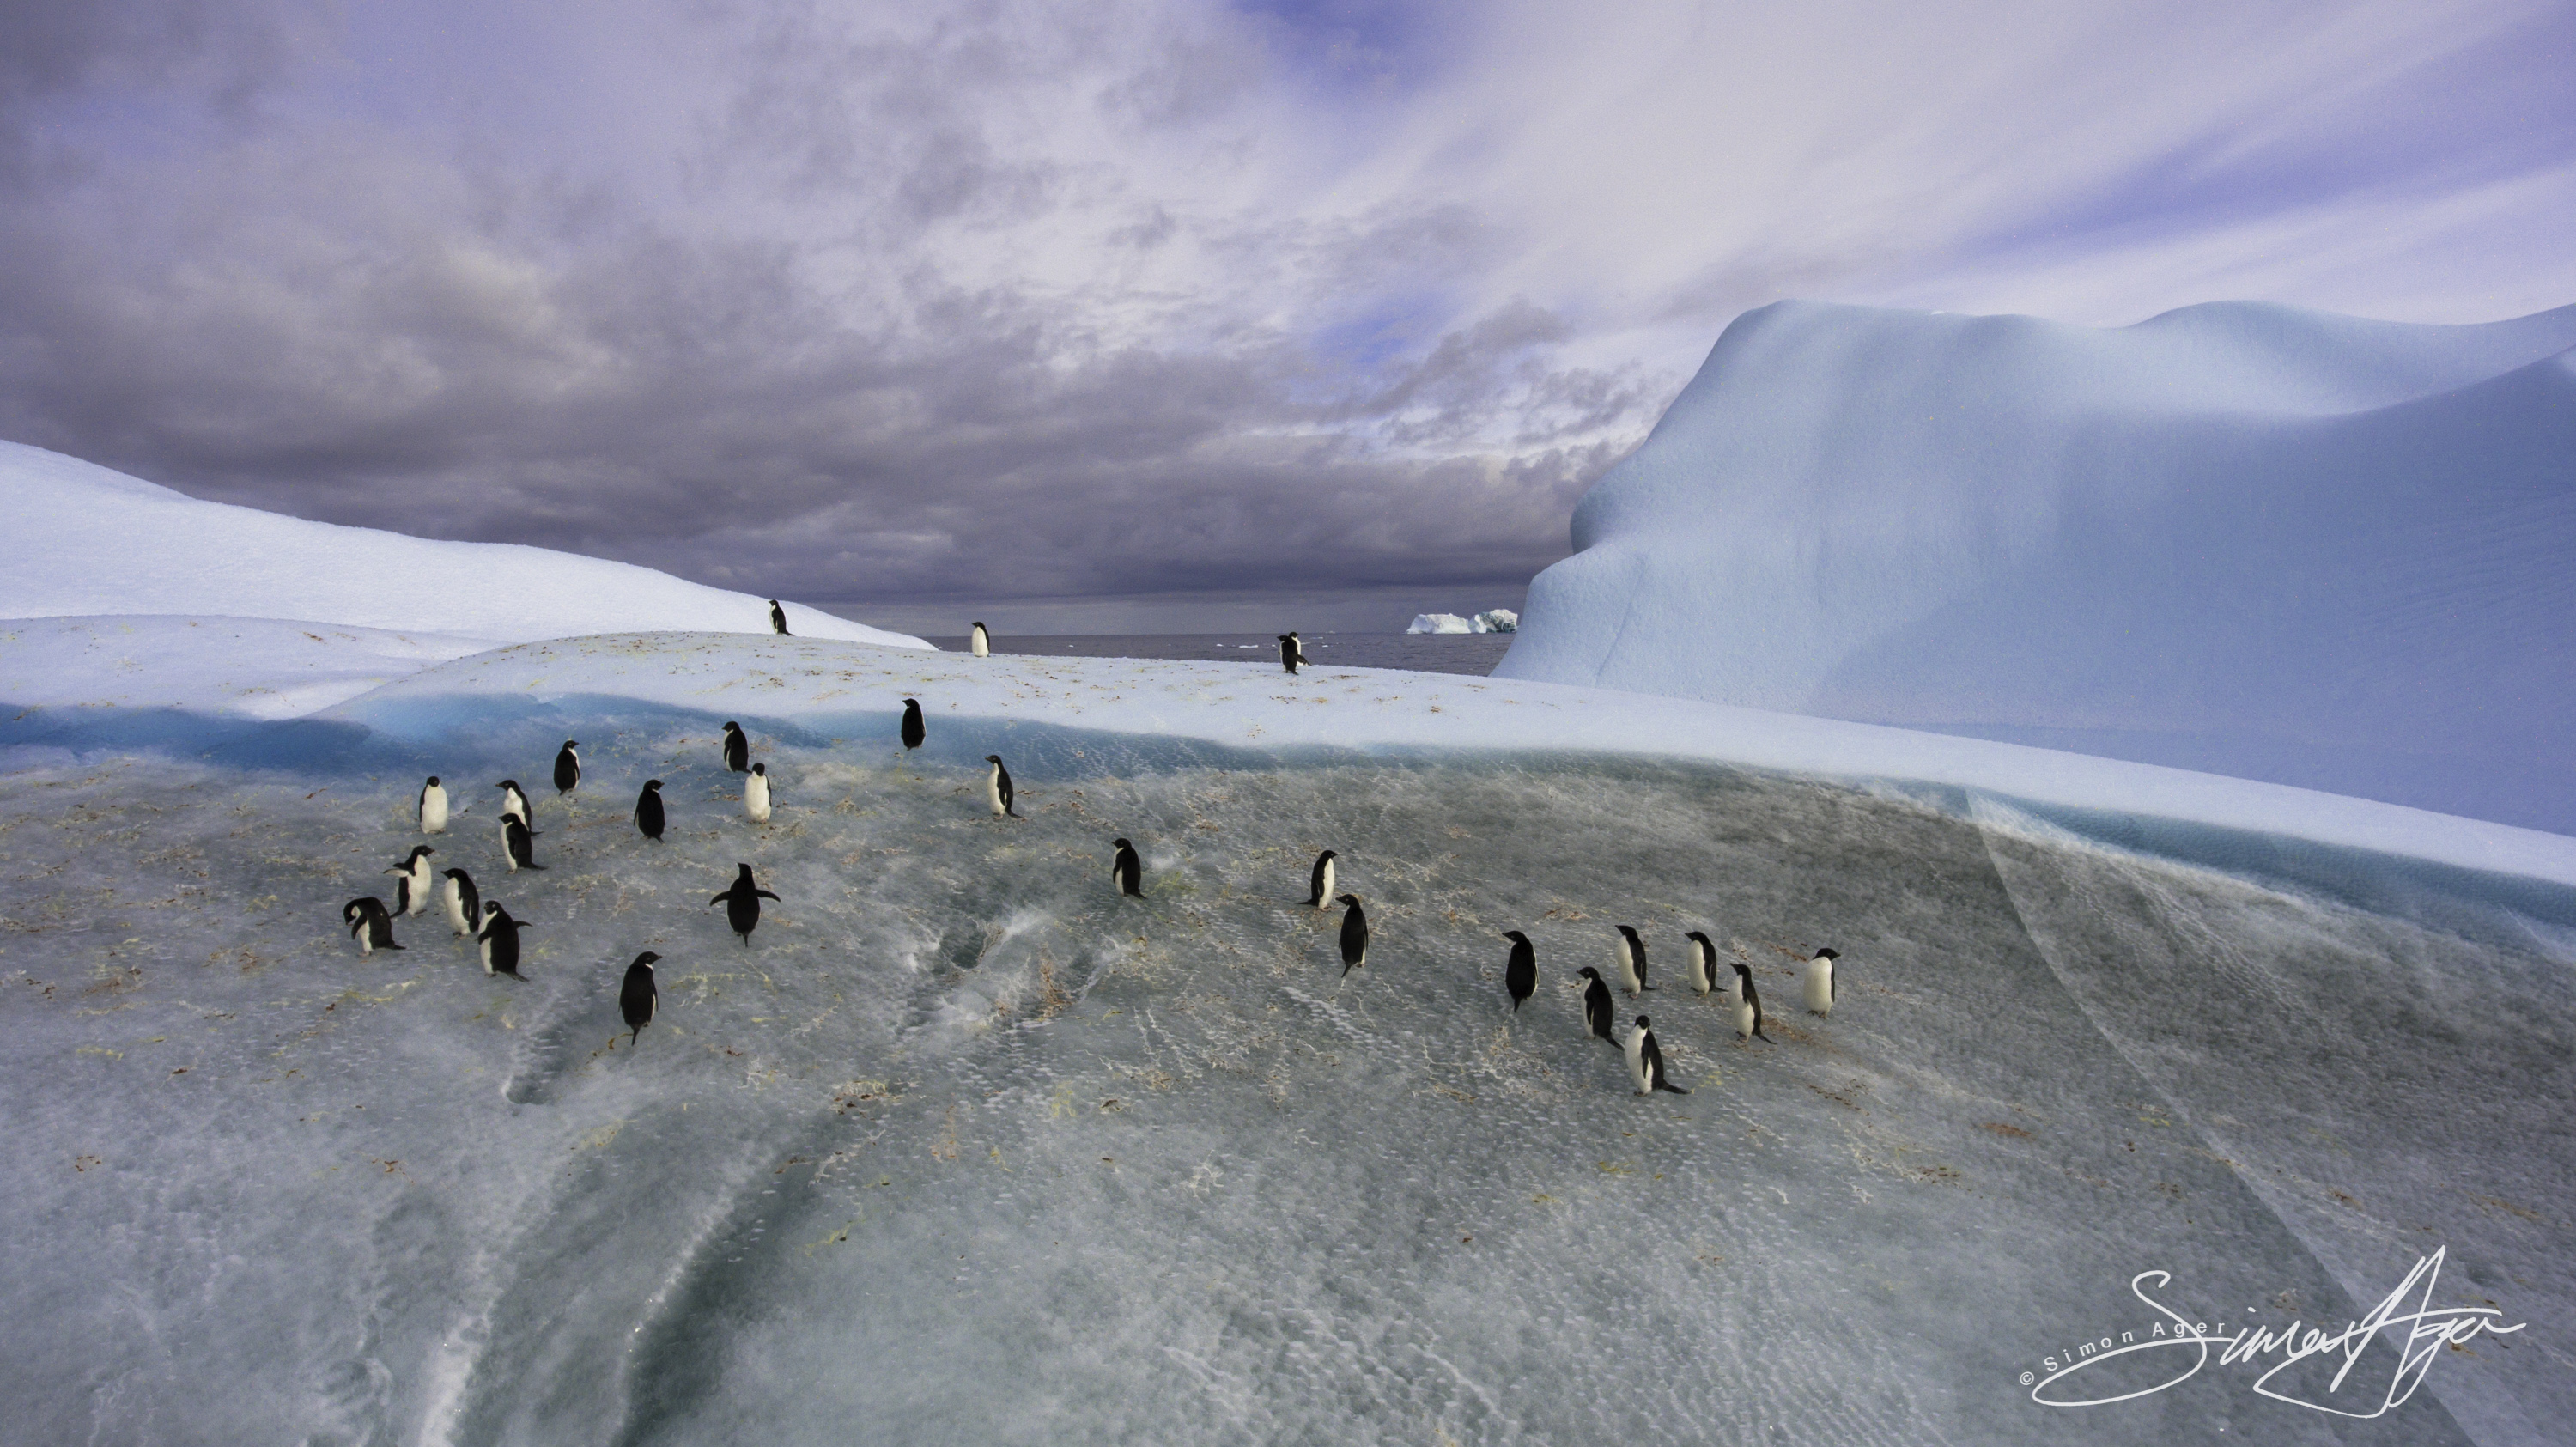 170219-SA-Adelie-penguins-on-ice-019-0447